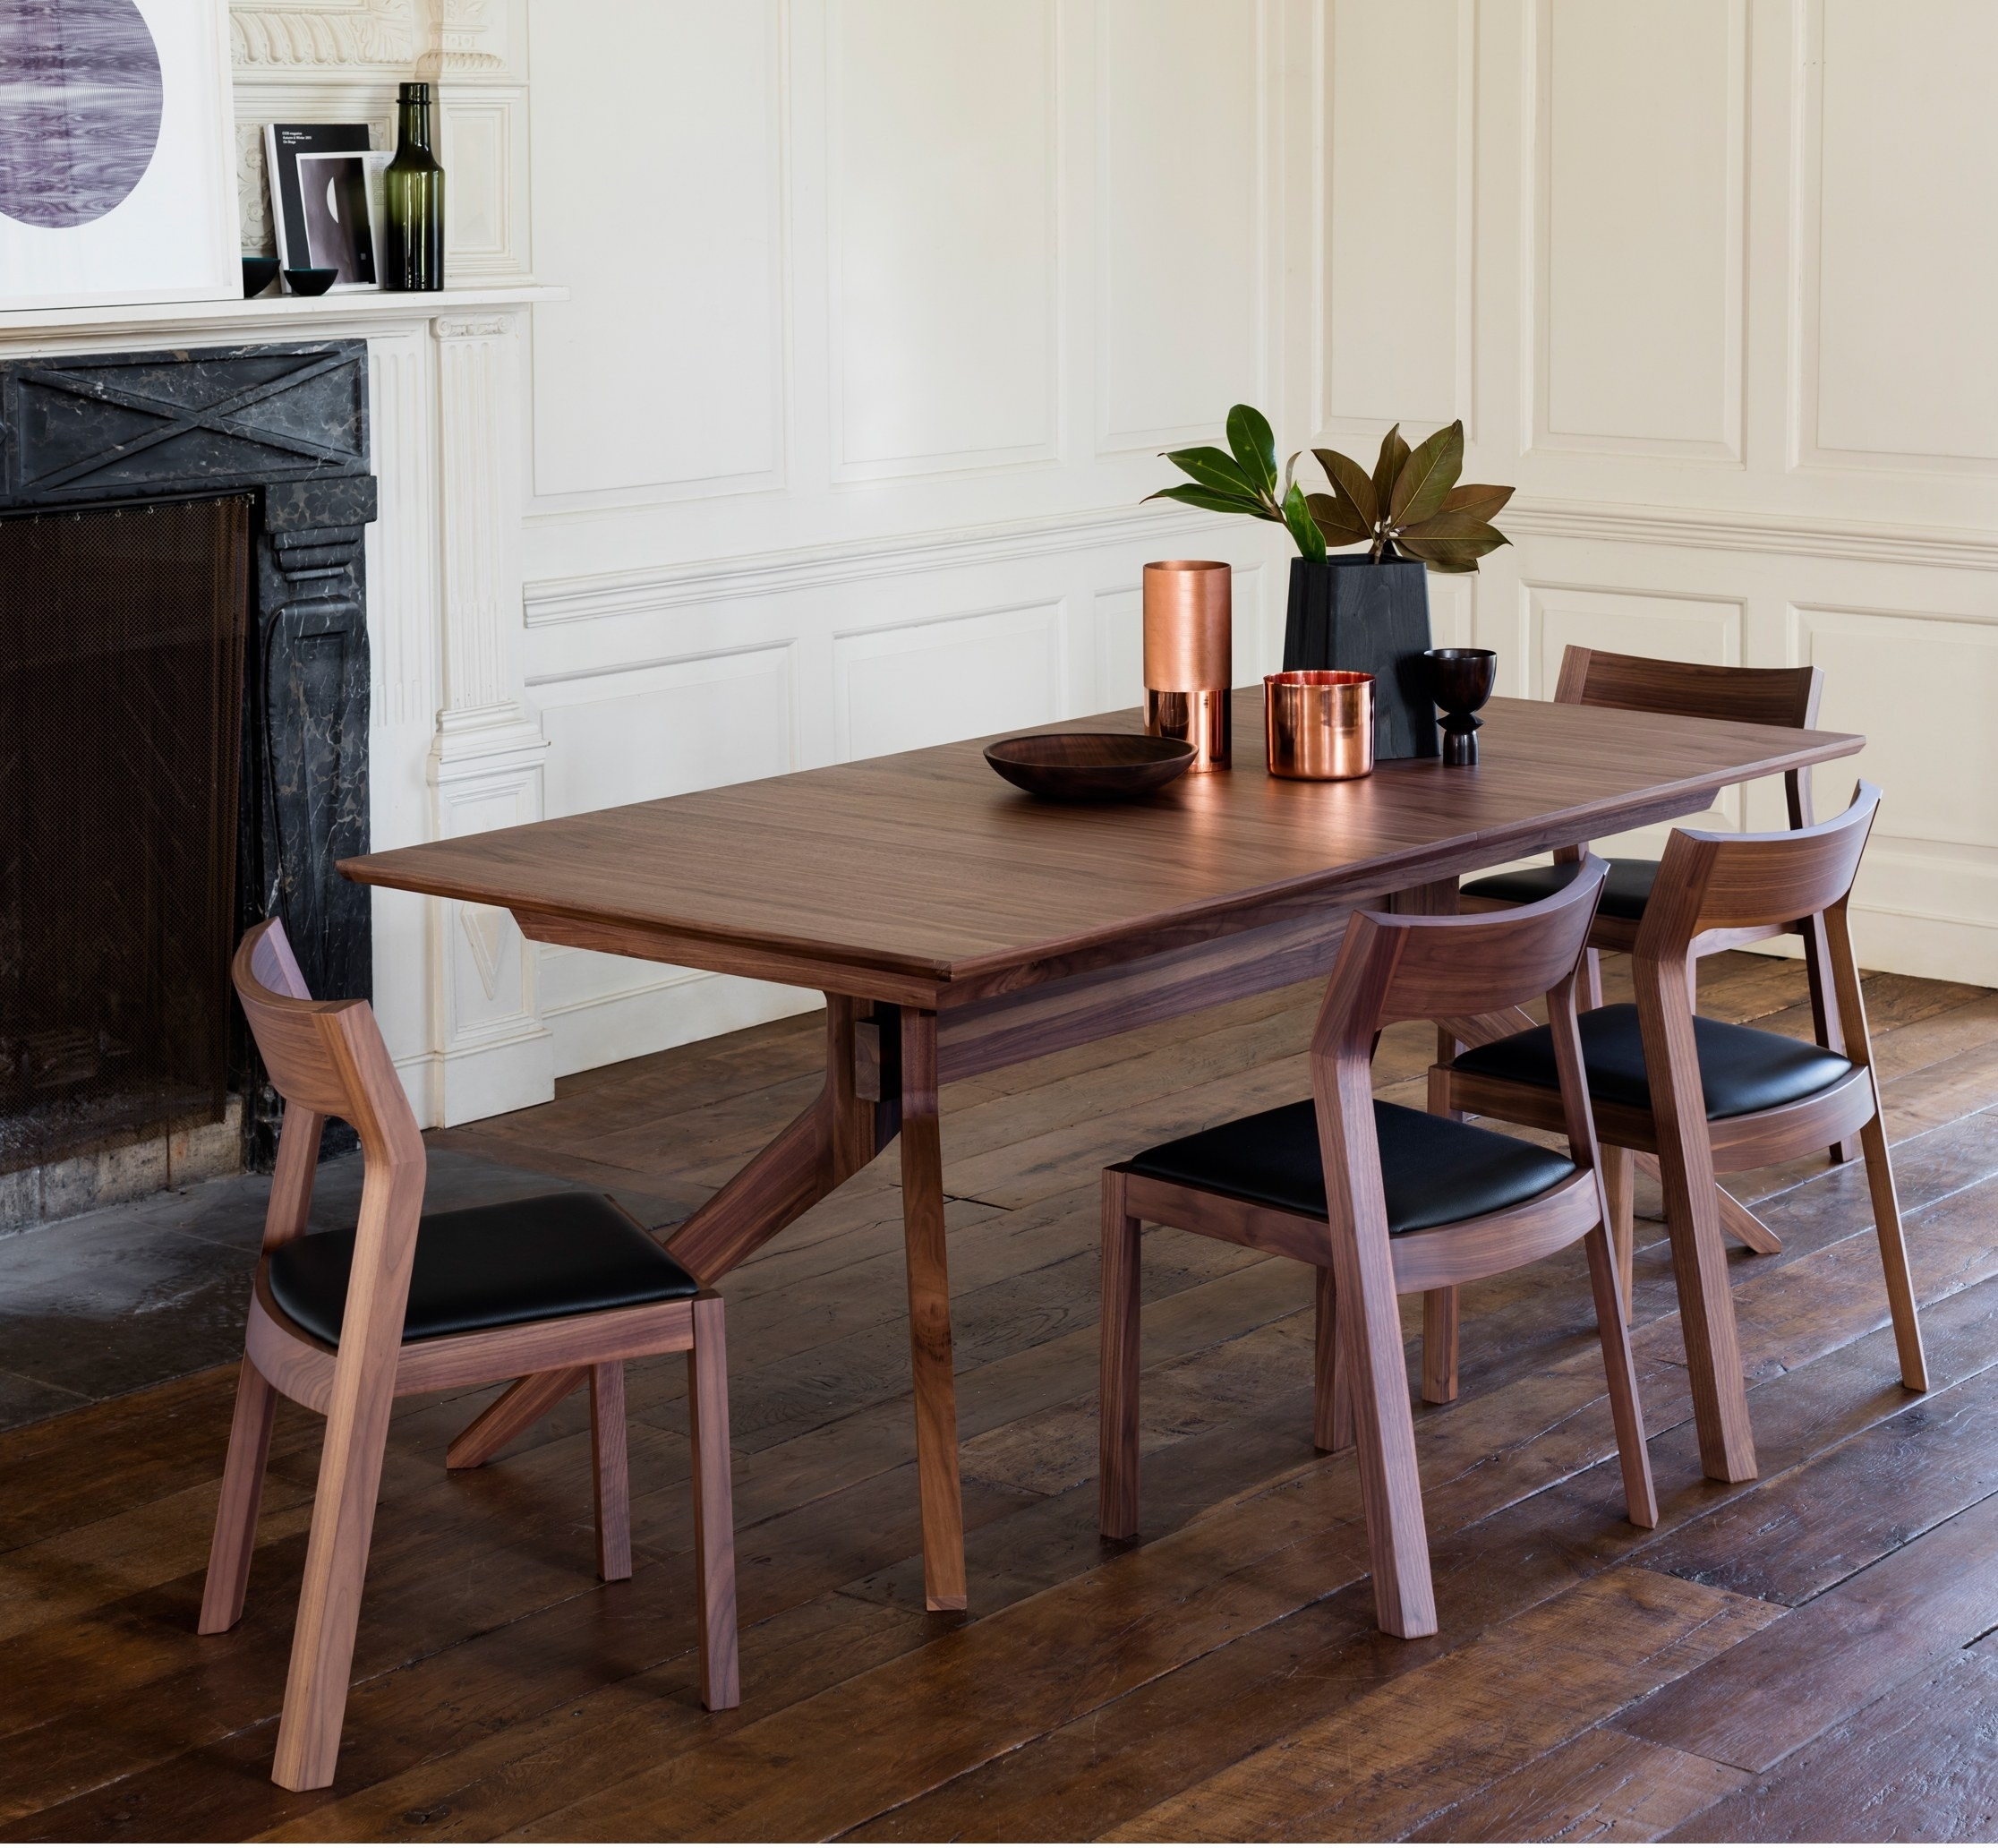 Extending Dining Room Sets – Justicearea – Within Most Current Rocco 7 Piece Extension Dining Sets (Image 7 of 20)